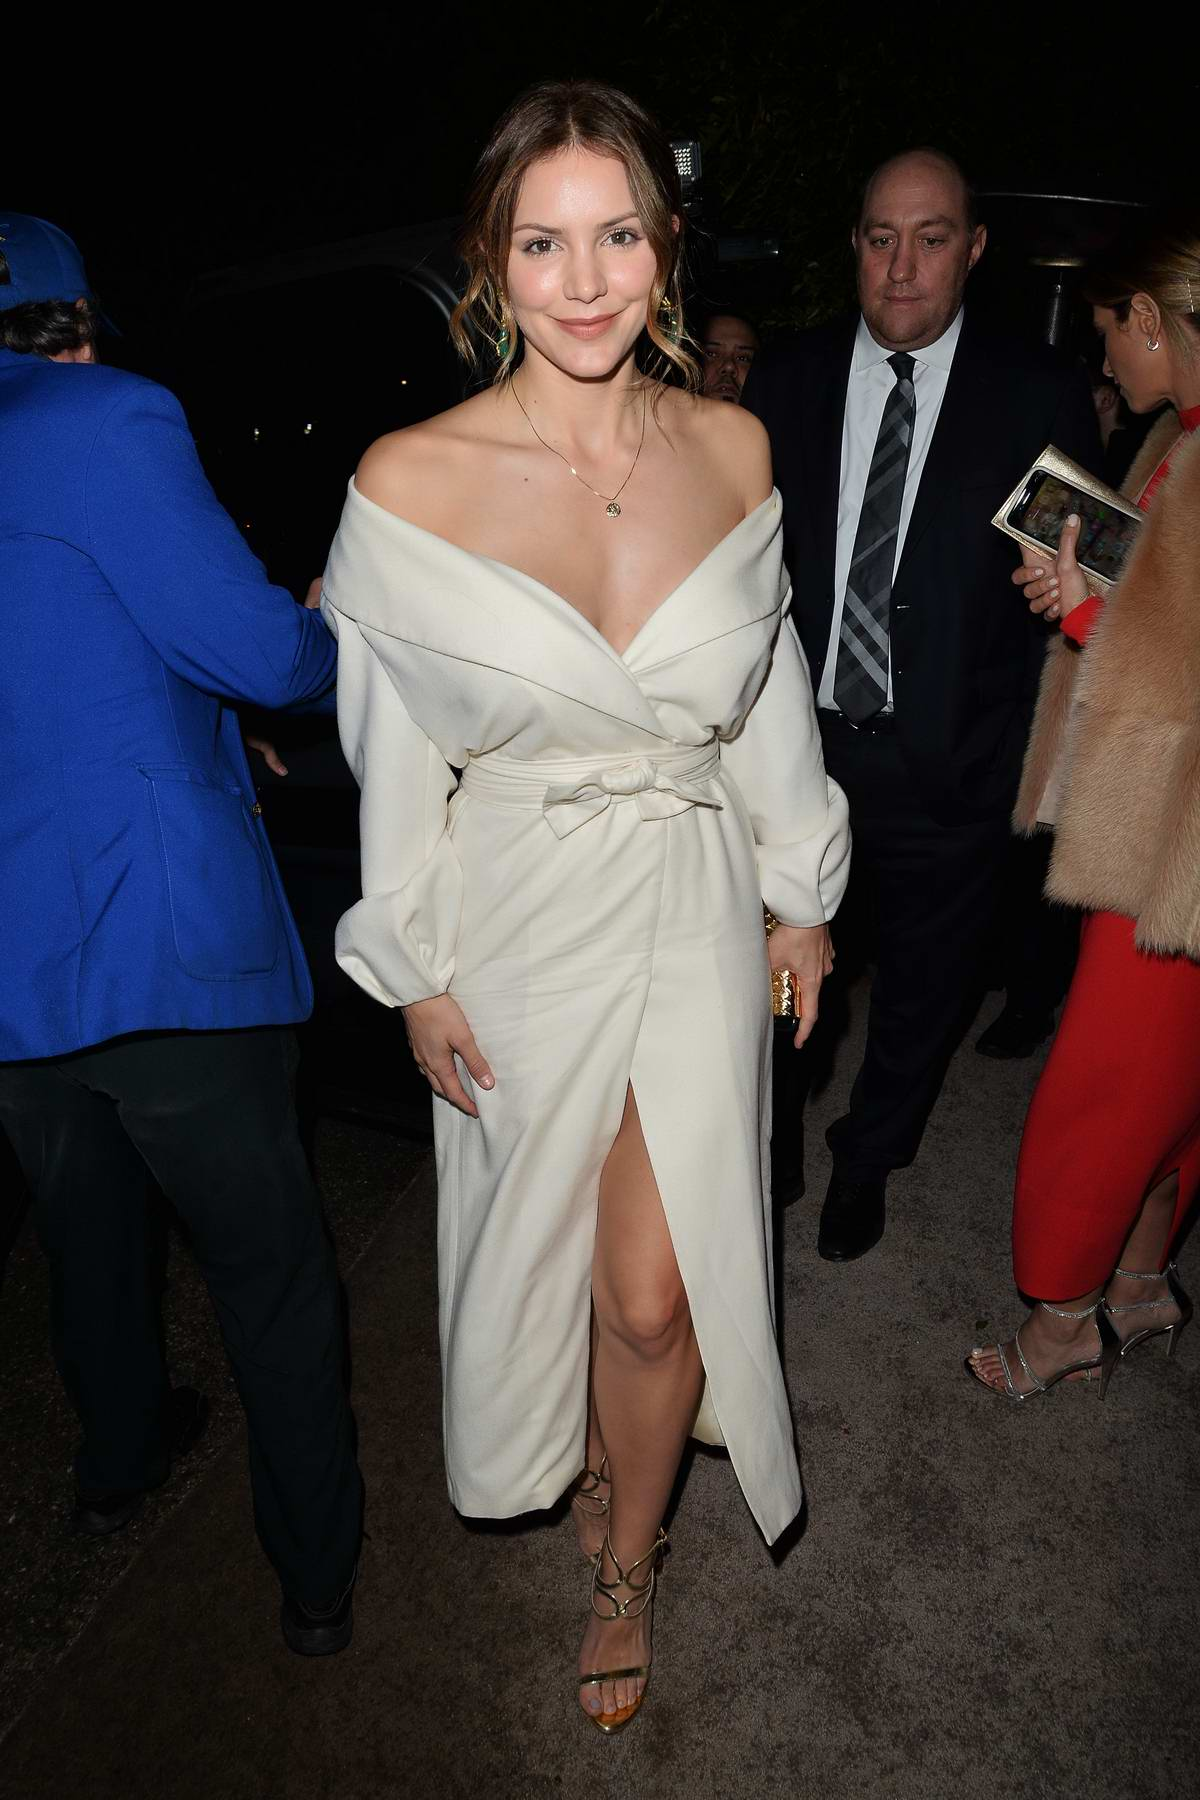 Katharine McPhee attending the WME Pre-Oscar Party in Los Angeles